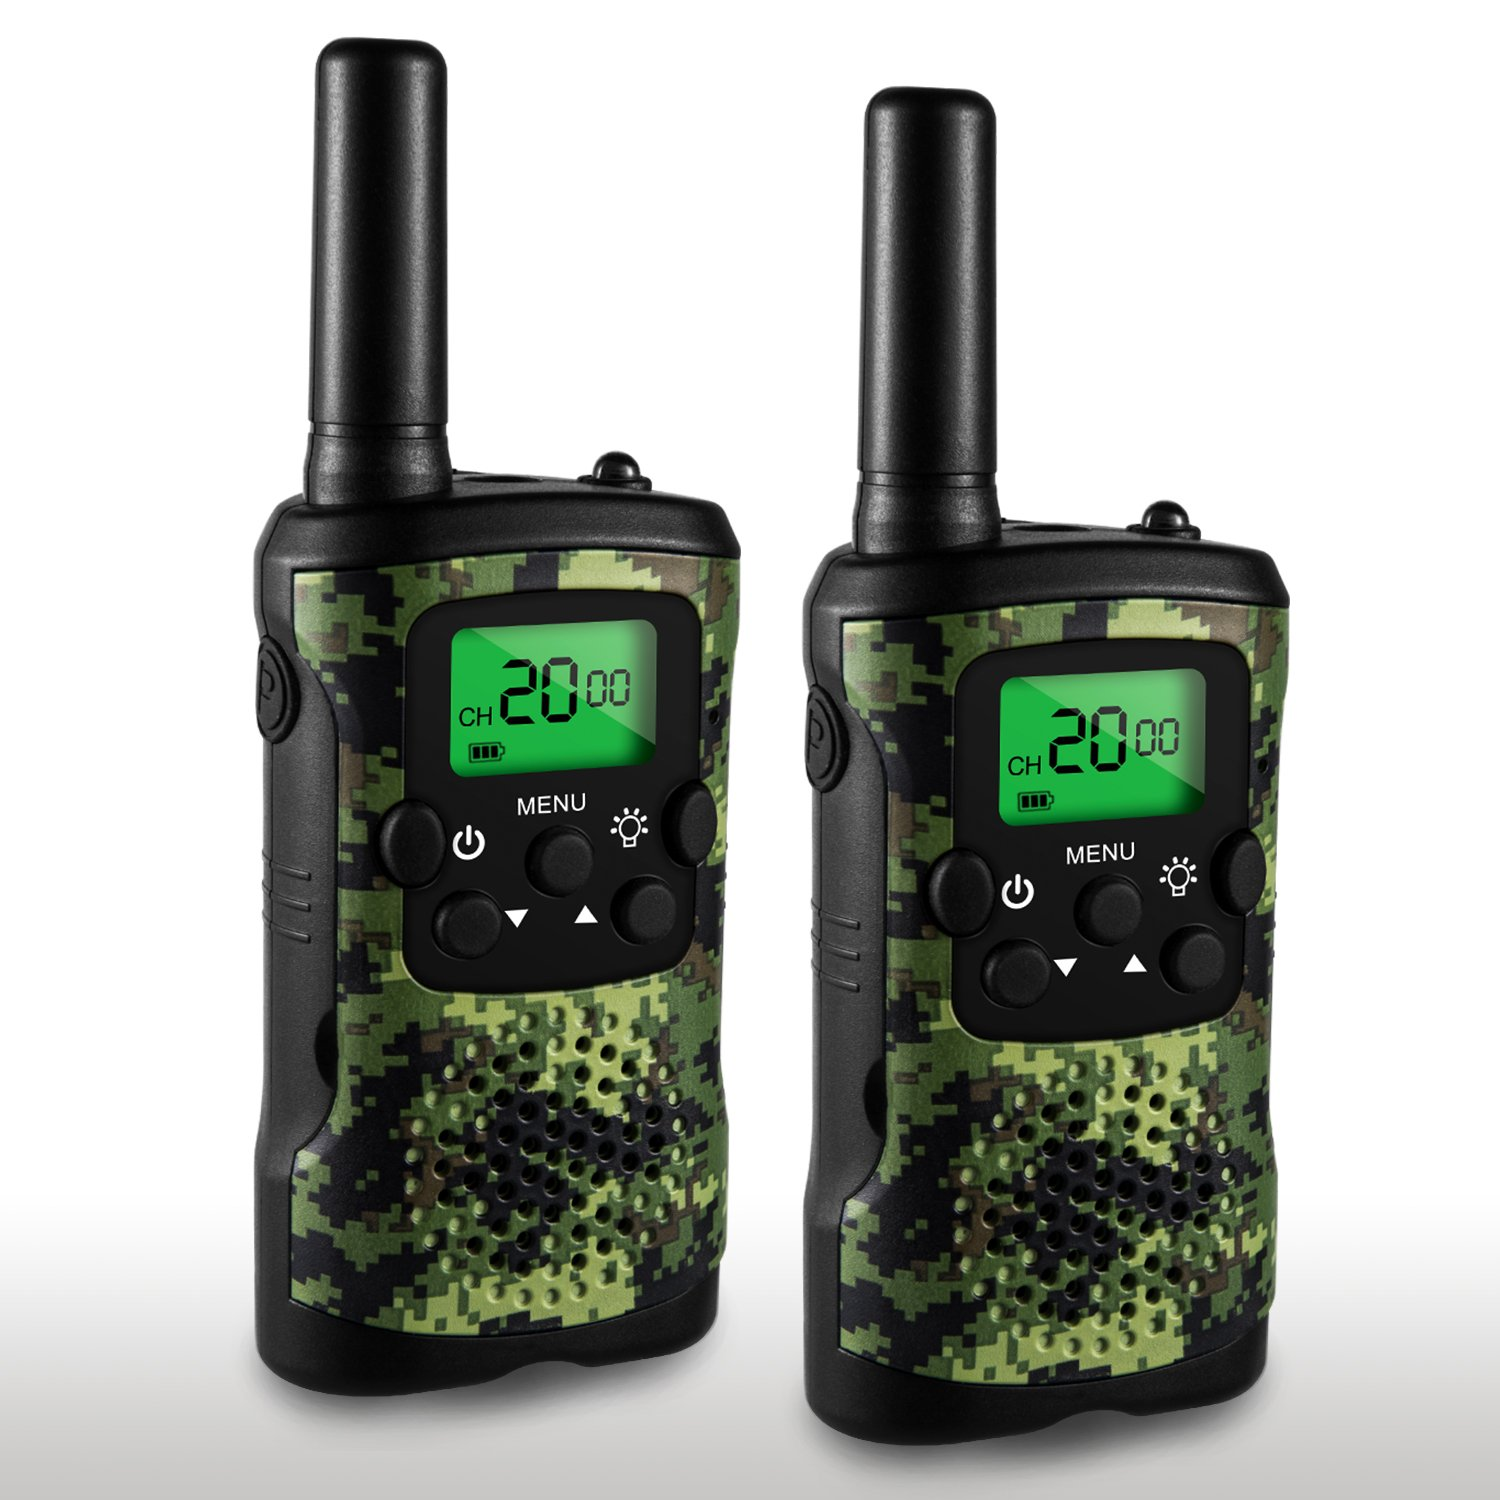 Walkie Talkies for Kids, 22 Channel Walkie Talkies 2 Way Radio 3 Miles (Up to 5Miles) Handheld Mini Walkie Talkies for Kids, Toys for 5-year old Boys and Girls (1 Pair) UOKOO